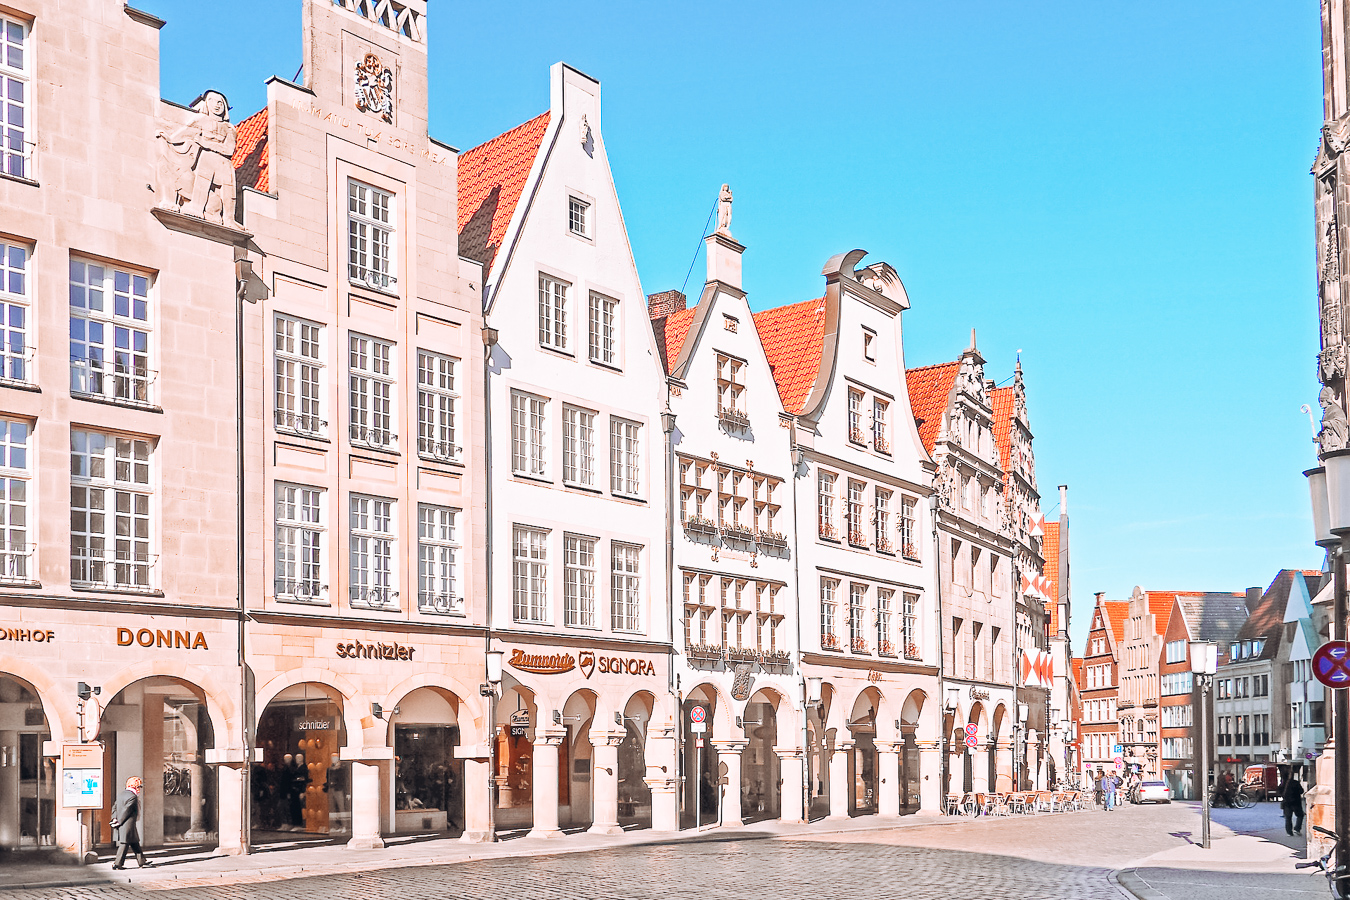 Buildings and shops in Münster